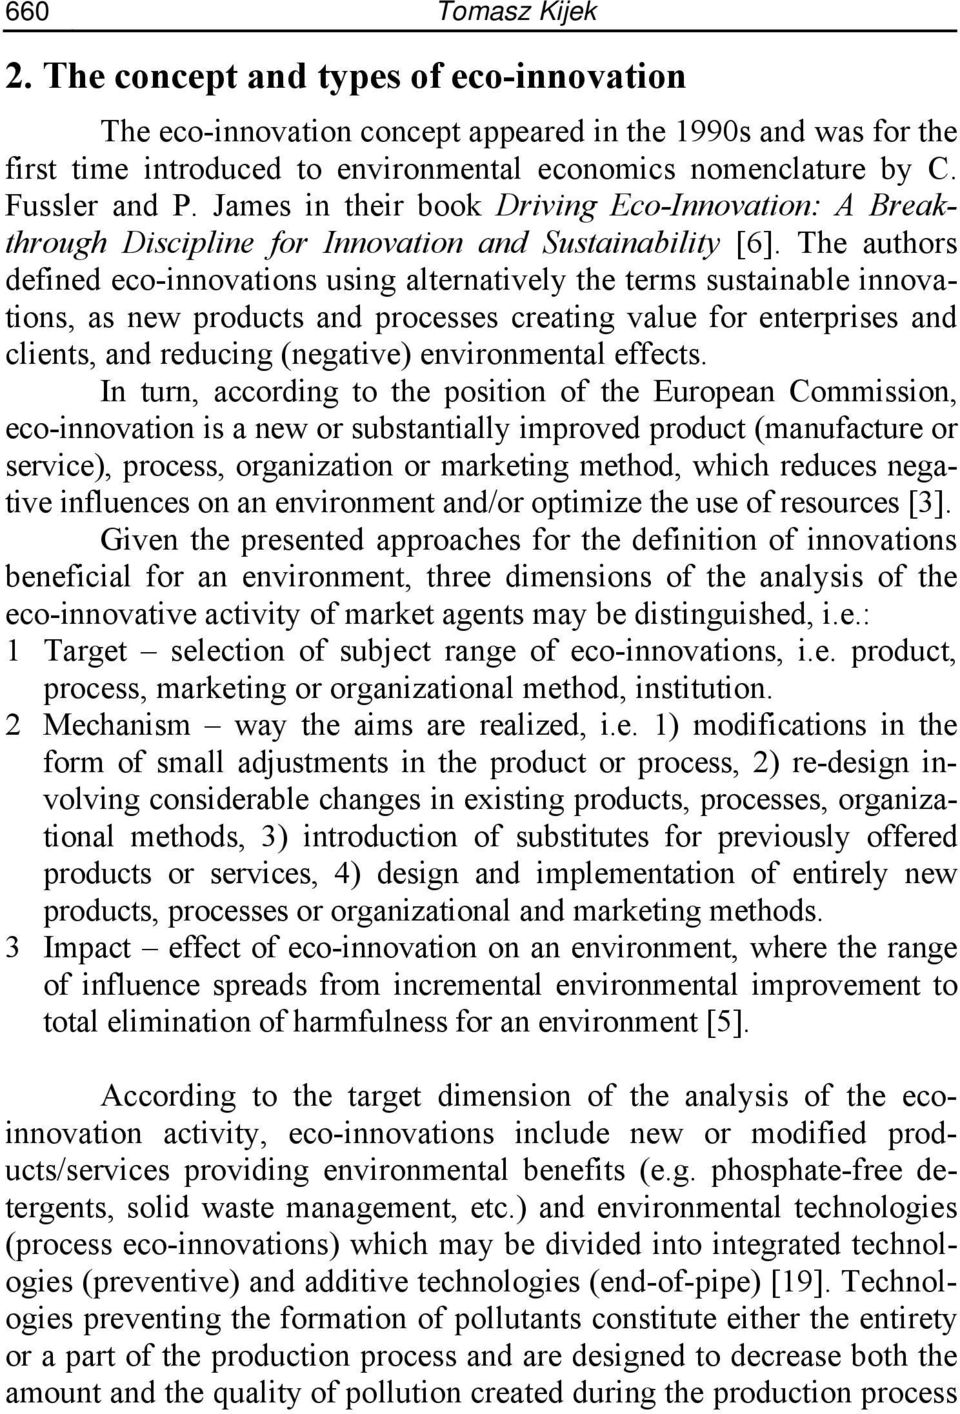 The authors defined eco-innovations using alternatively the terms sustainable innovations, as new products and processes creating value for enterprises and clients, and reducing (negative)